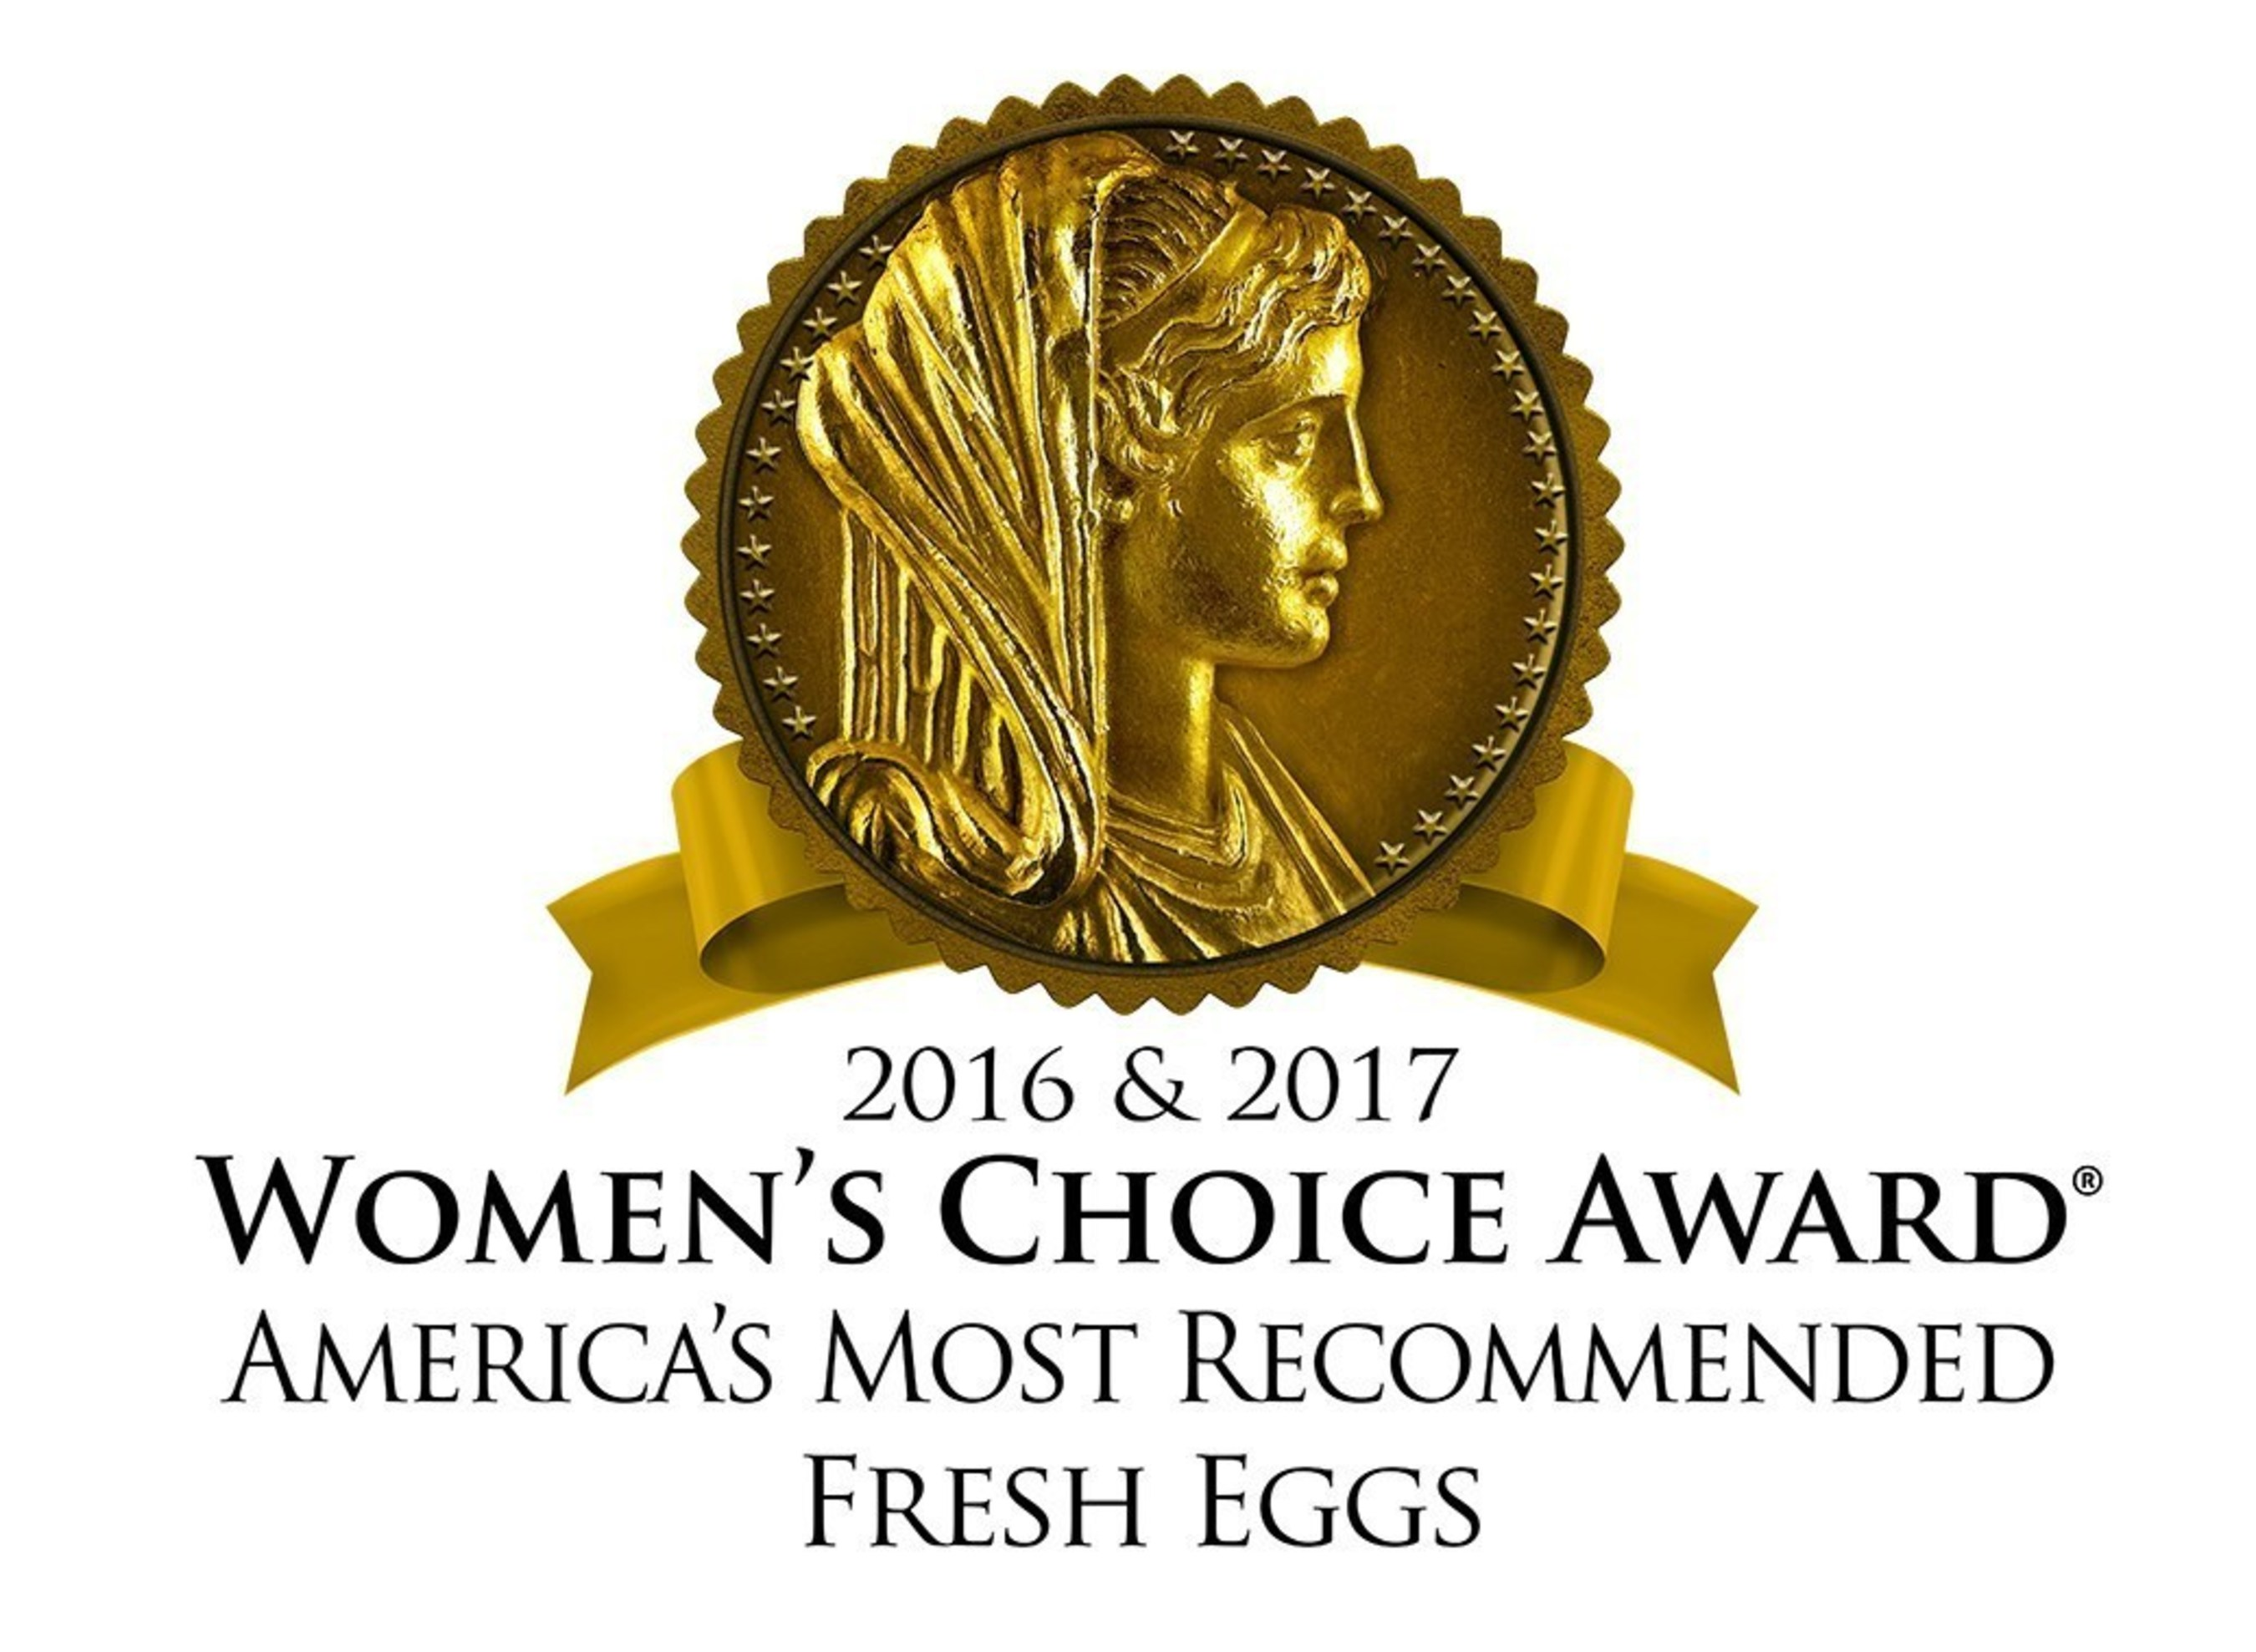 Women's Choice Award - America's Most Recommended Fresh Eggs